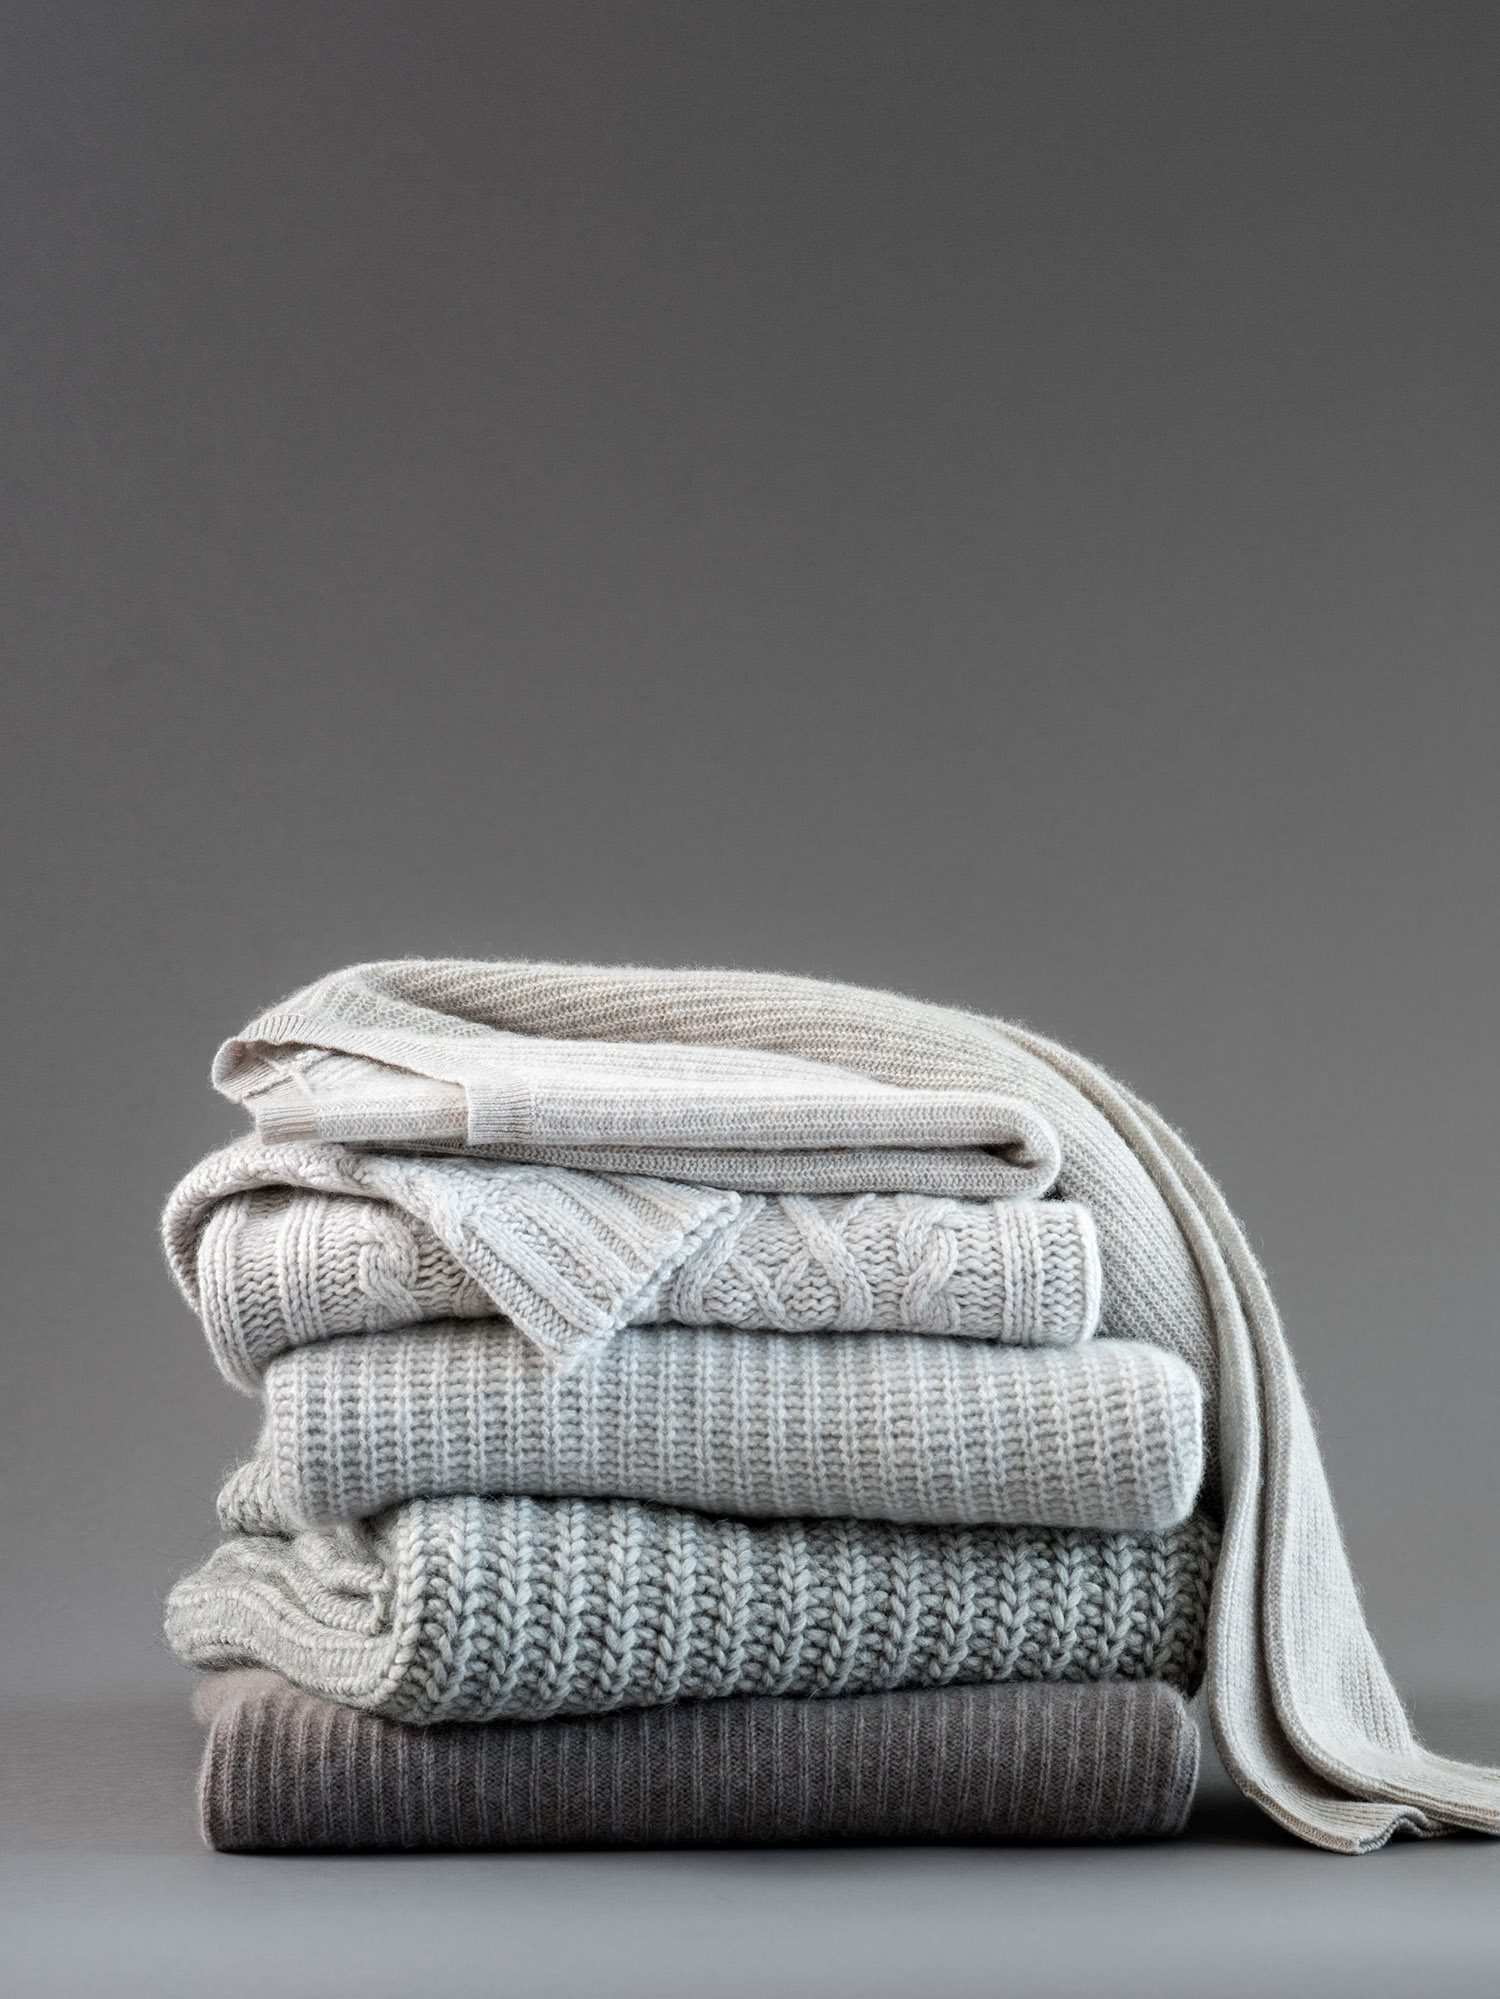 Sweater Stack cropped.jpg